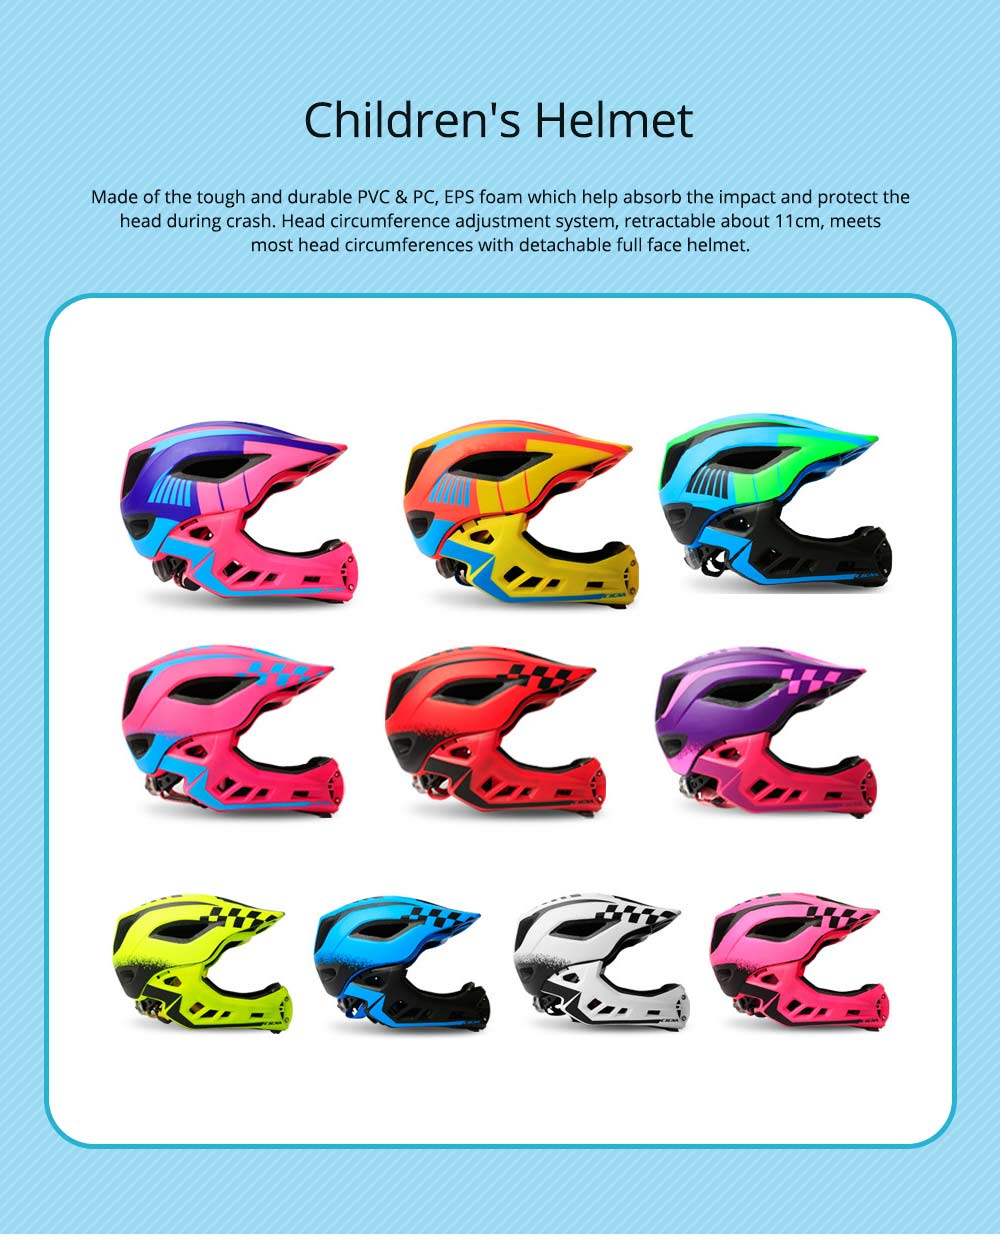 Children's Helmet for Roller Skating, Cycling, Detachable Full Face Helmet Airflow Bicycle Helmets for Kids 0